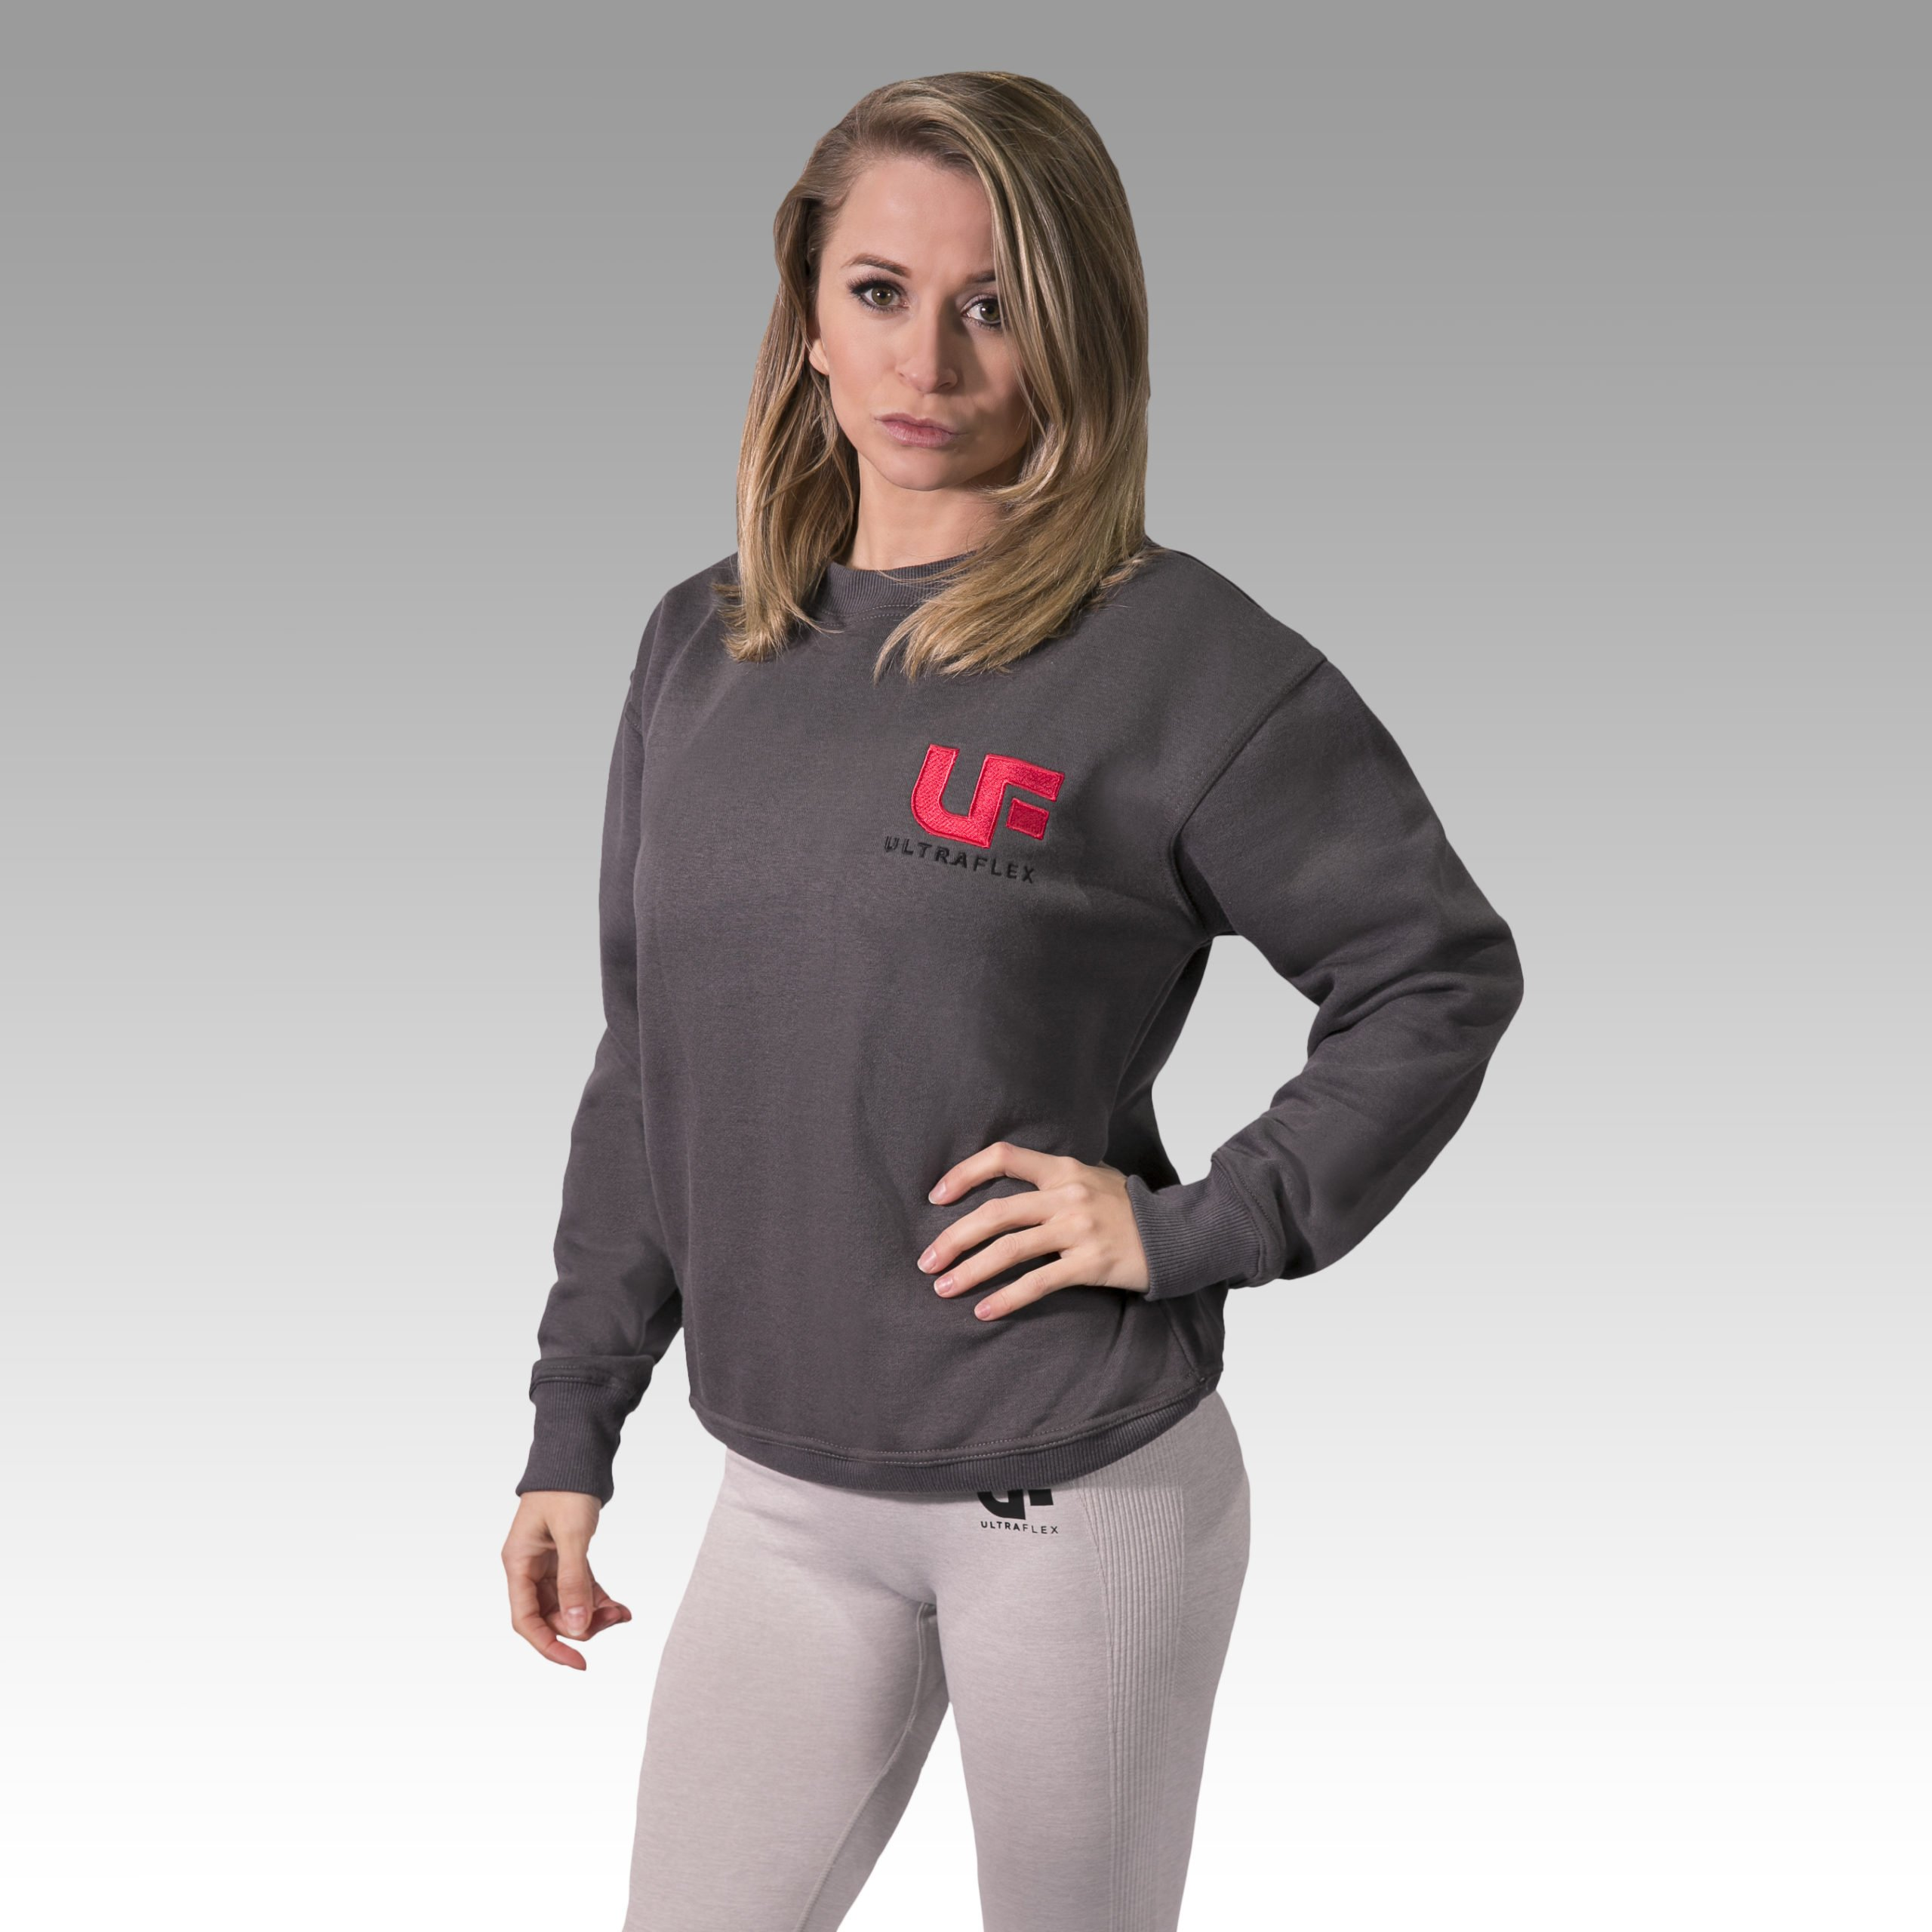 UF Grey Jumper